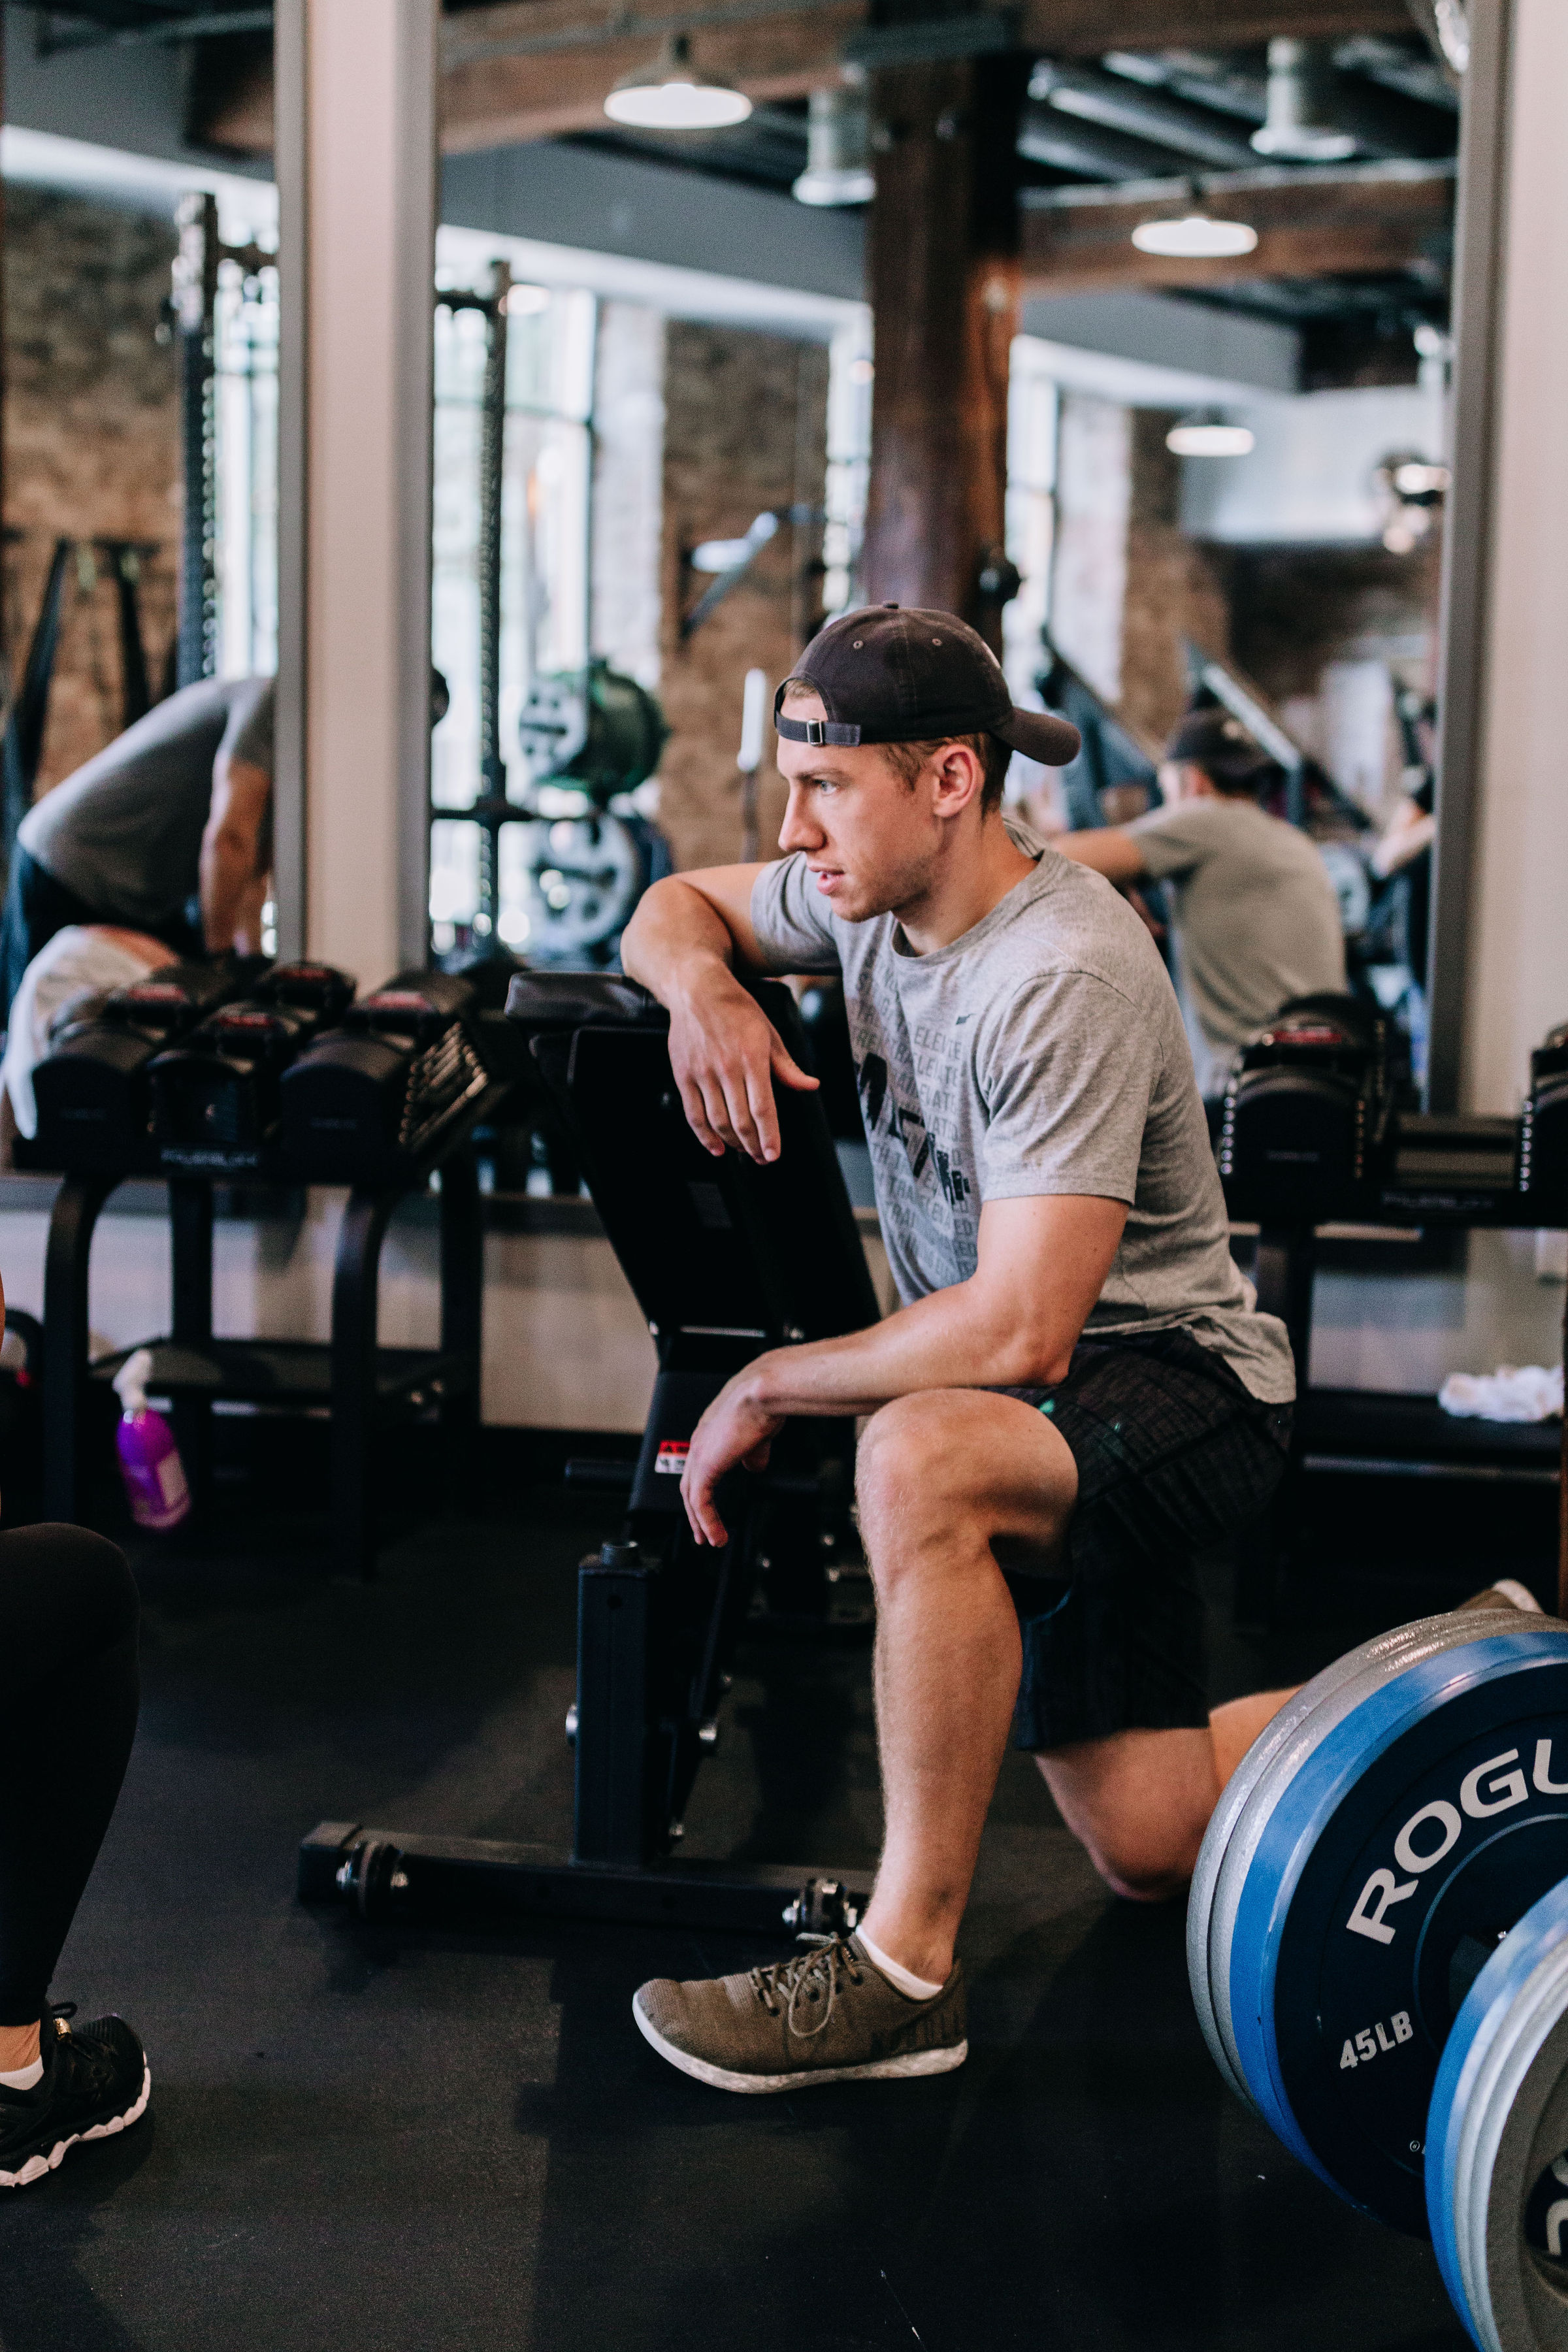 """Chad Driscoll - Owner/Strength Coach - After receviing my B.S. in Kinesiology from Illinois, I didn't really know what the hell i wanted to do. I love exercise and Strength Training, and after completing an internship with the Maryland Terrapins Football team I was ready to turn my passion into a career. I am beyond excited to apply my skills to help every day people get strong, remain healthy, and achieve their fitness goals.My fitness truth: """"No one ever complained about being strong."""""""